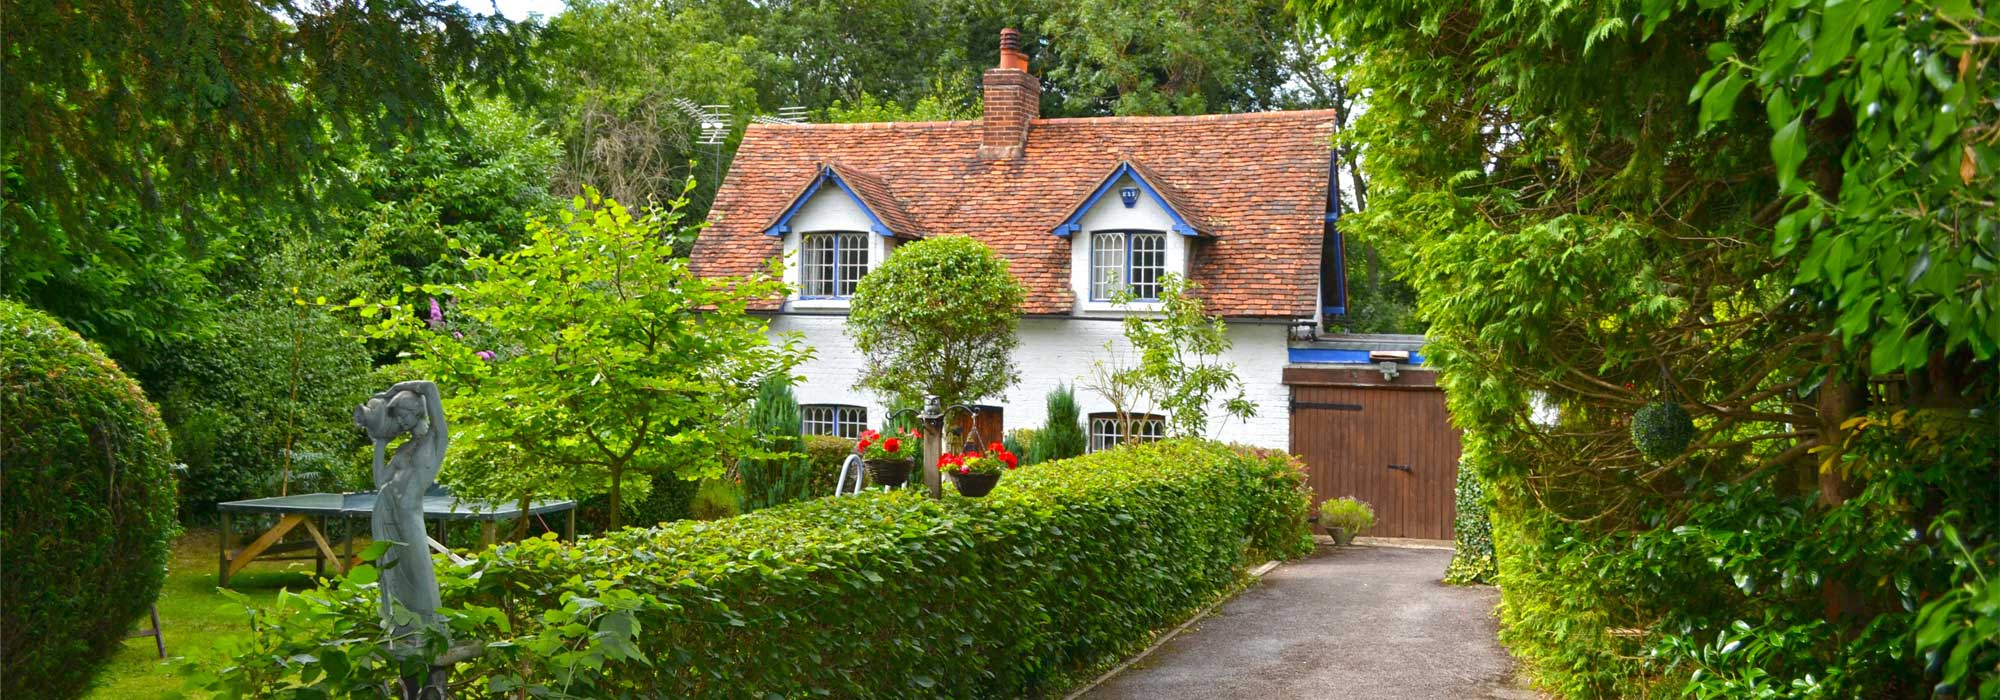 Lodge Hollow Cottage, Cock Lane, Hoddesdon, Herts, E11 8LS